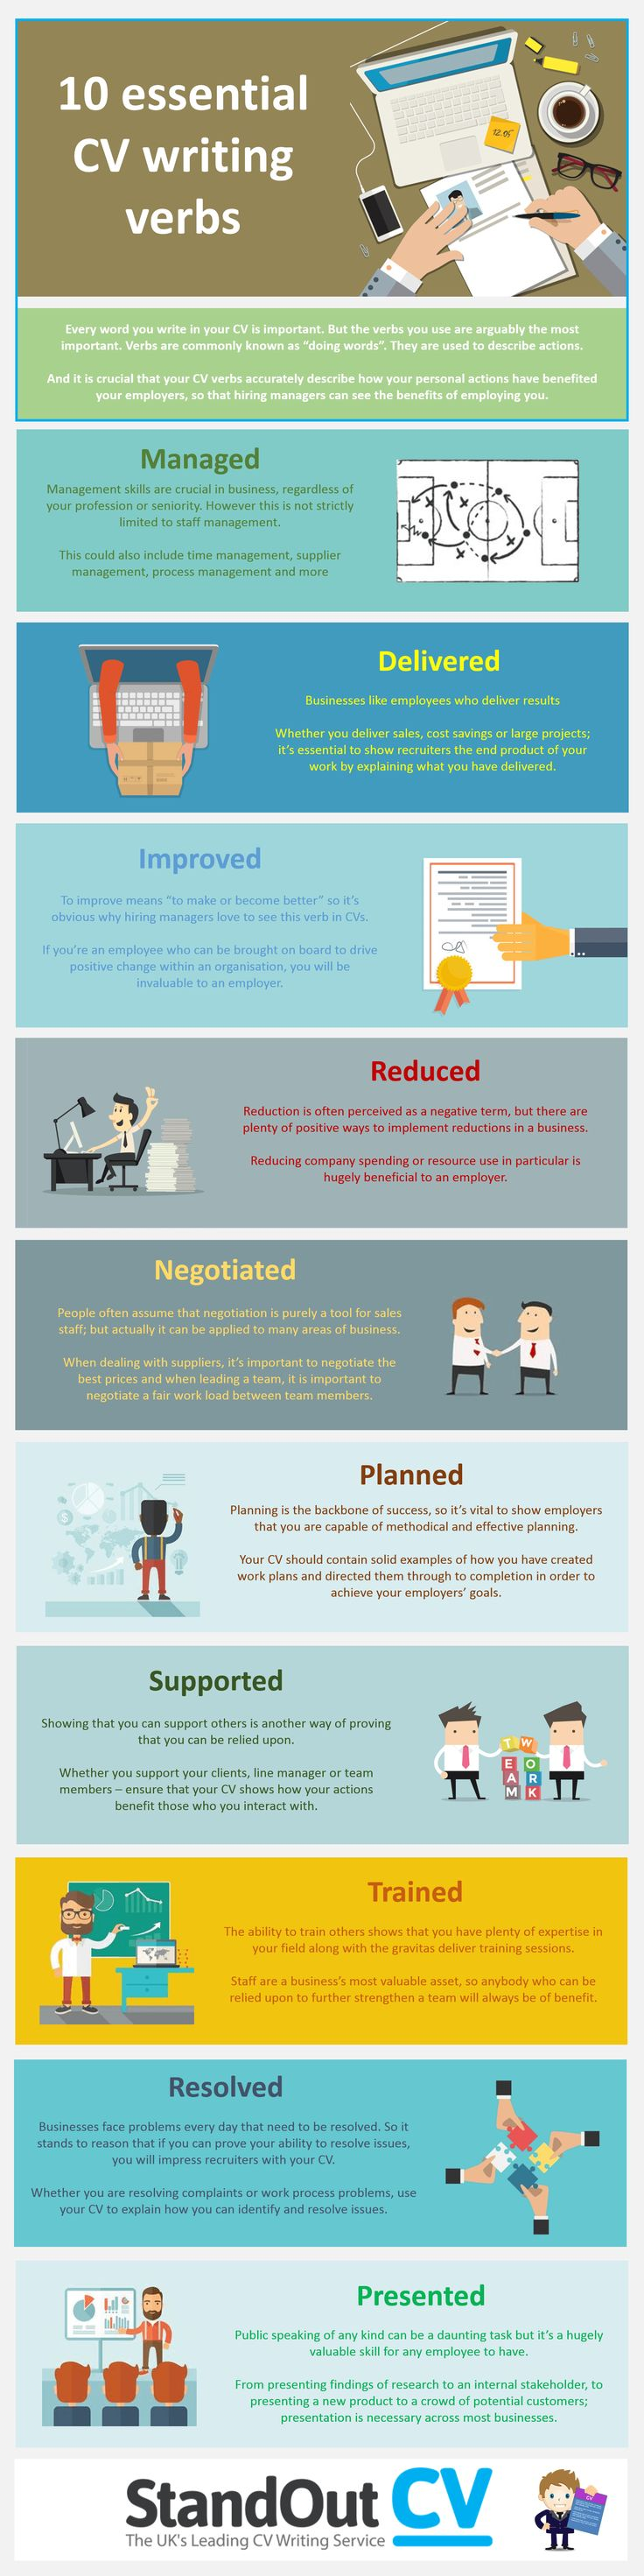 best ideas about cv tips resume writing resume 10 essential cv writing verbs infographic elearninginfographics com 10